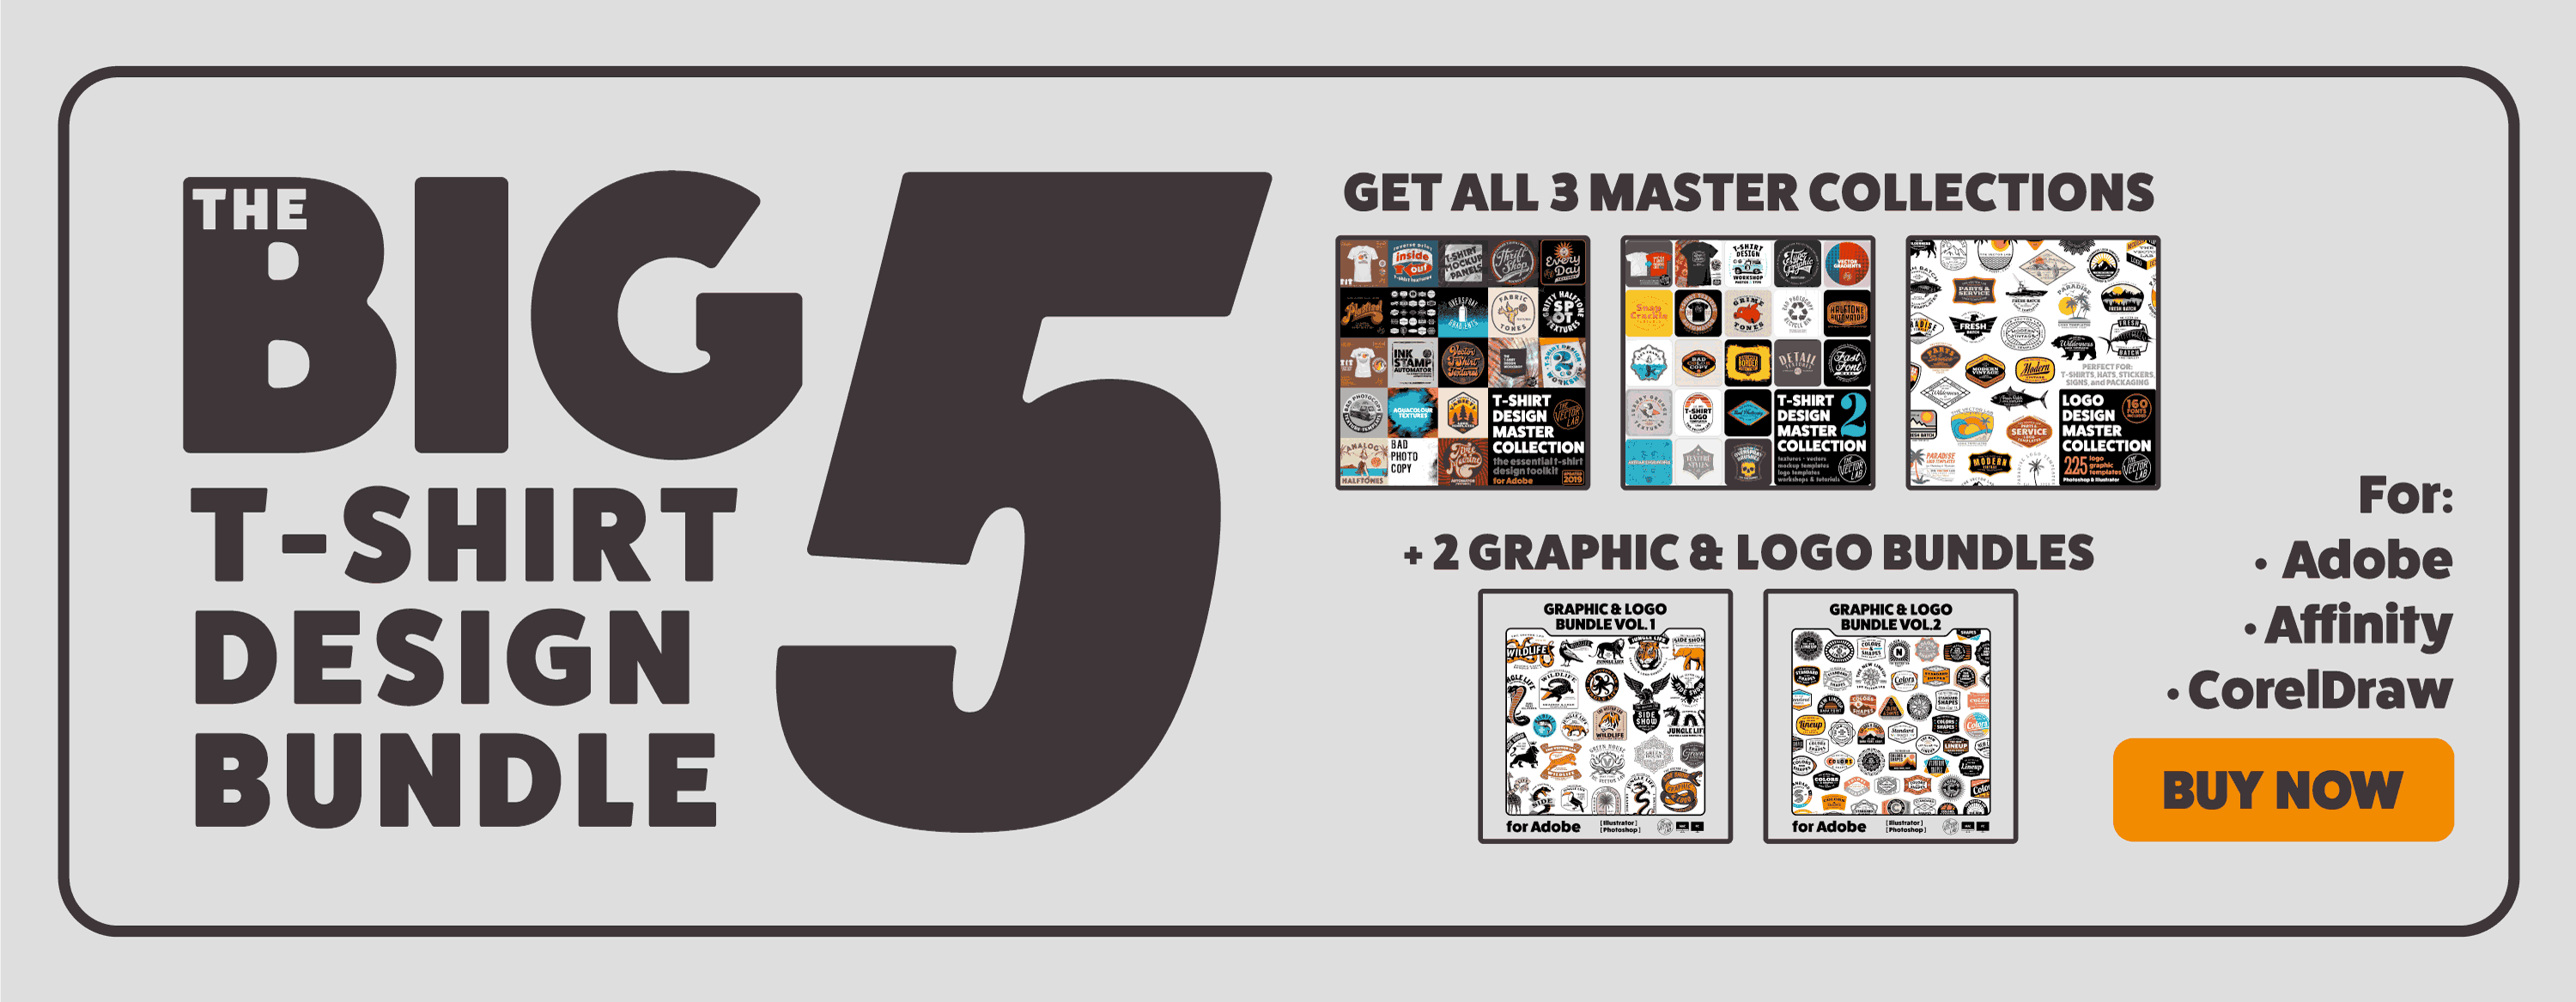 The Big 5 T-Shirt Design Bundle